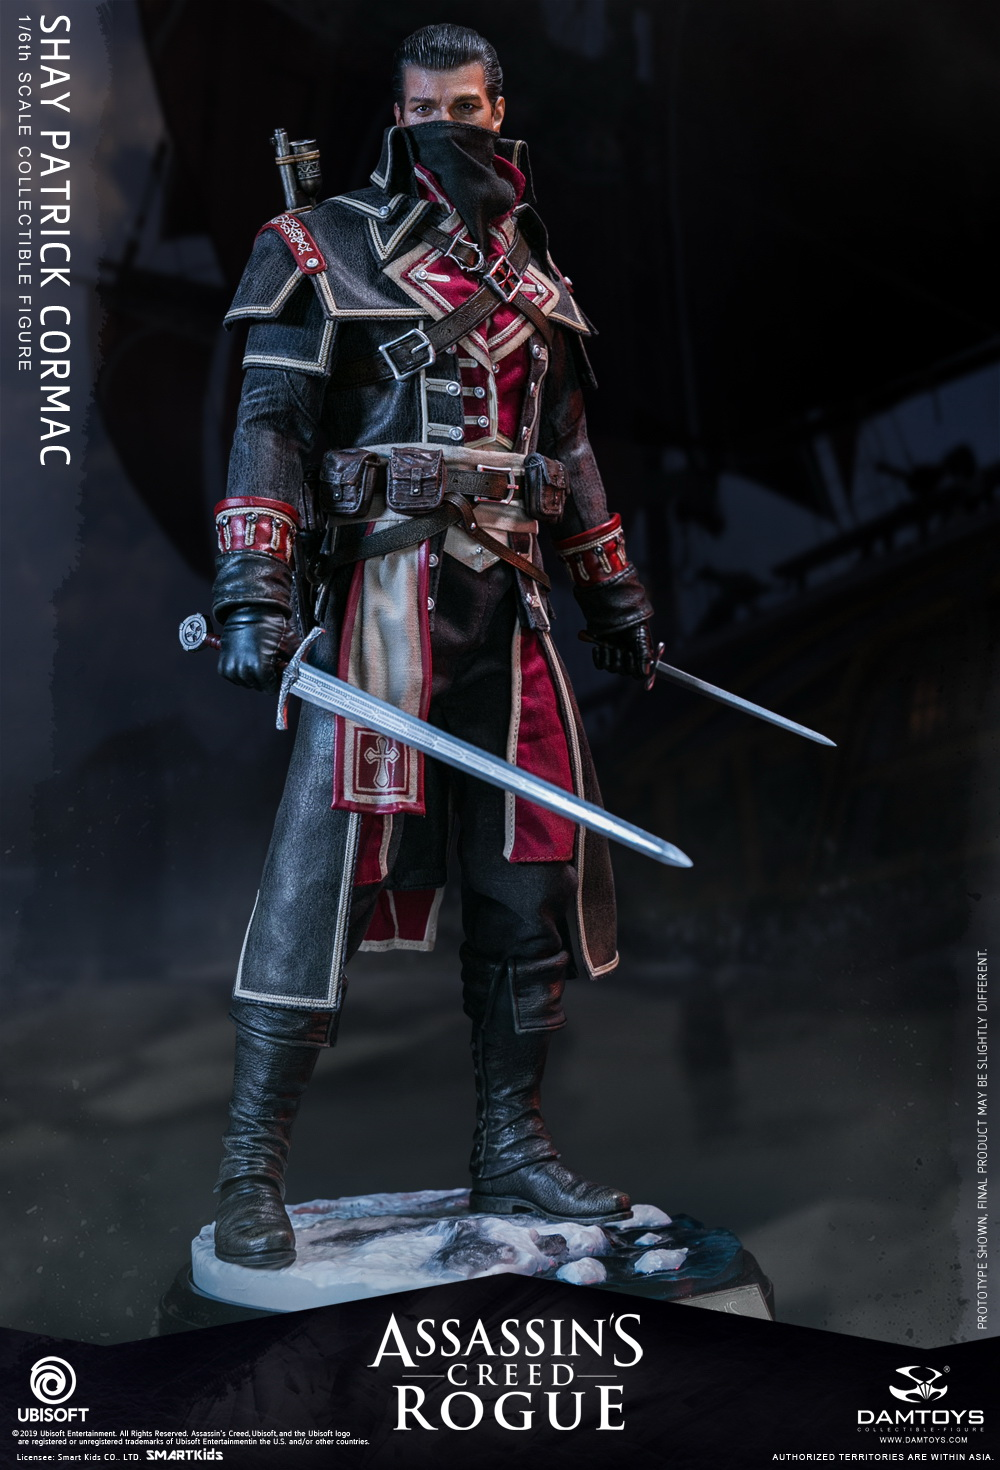 Dam Toys Assassins Creed Shay Patrick Cormac 1:6th